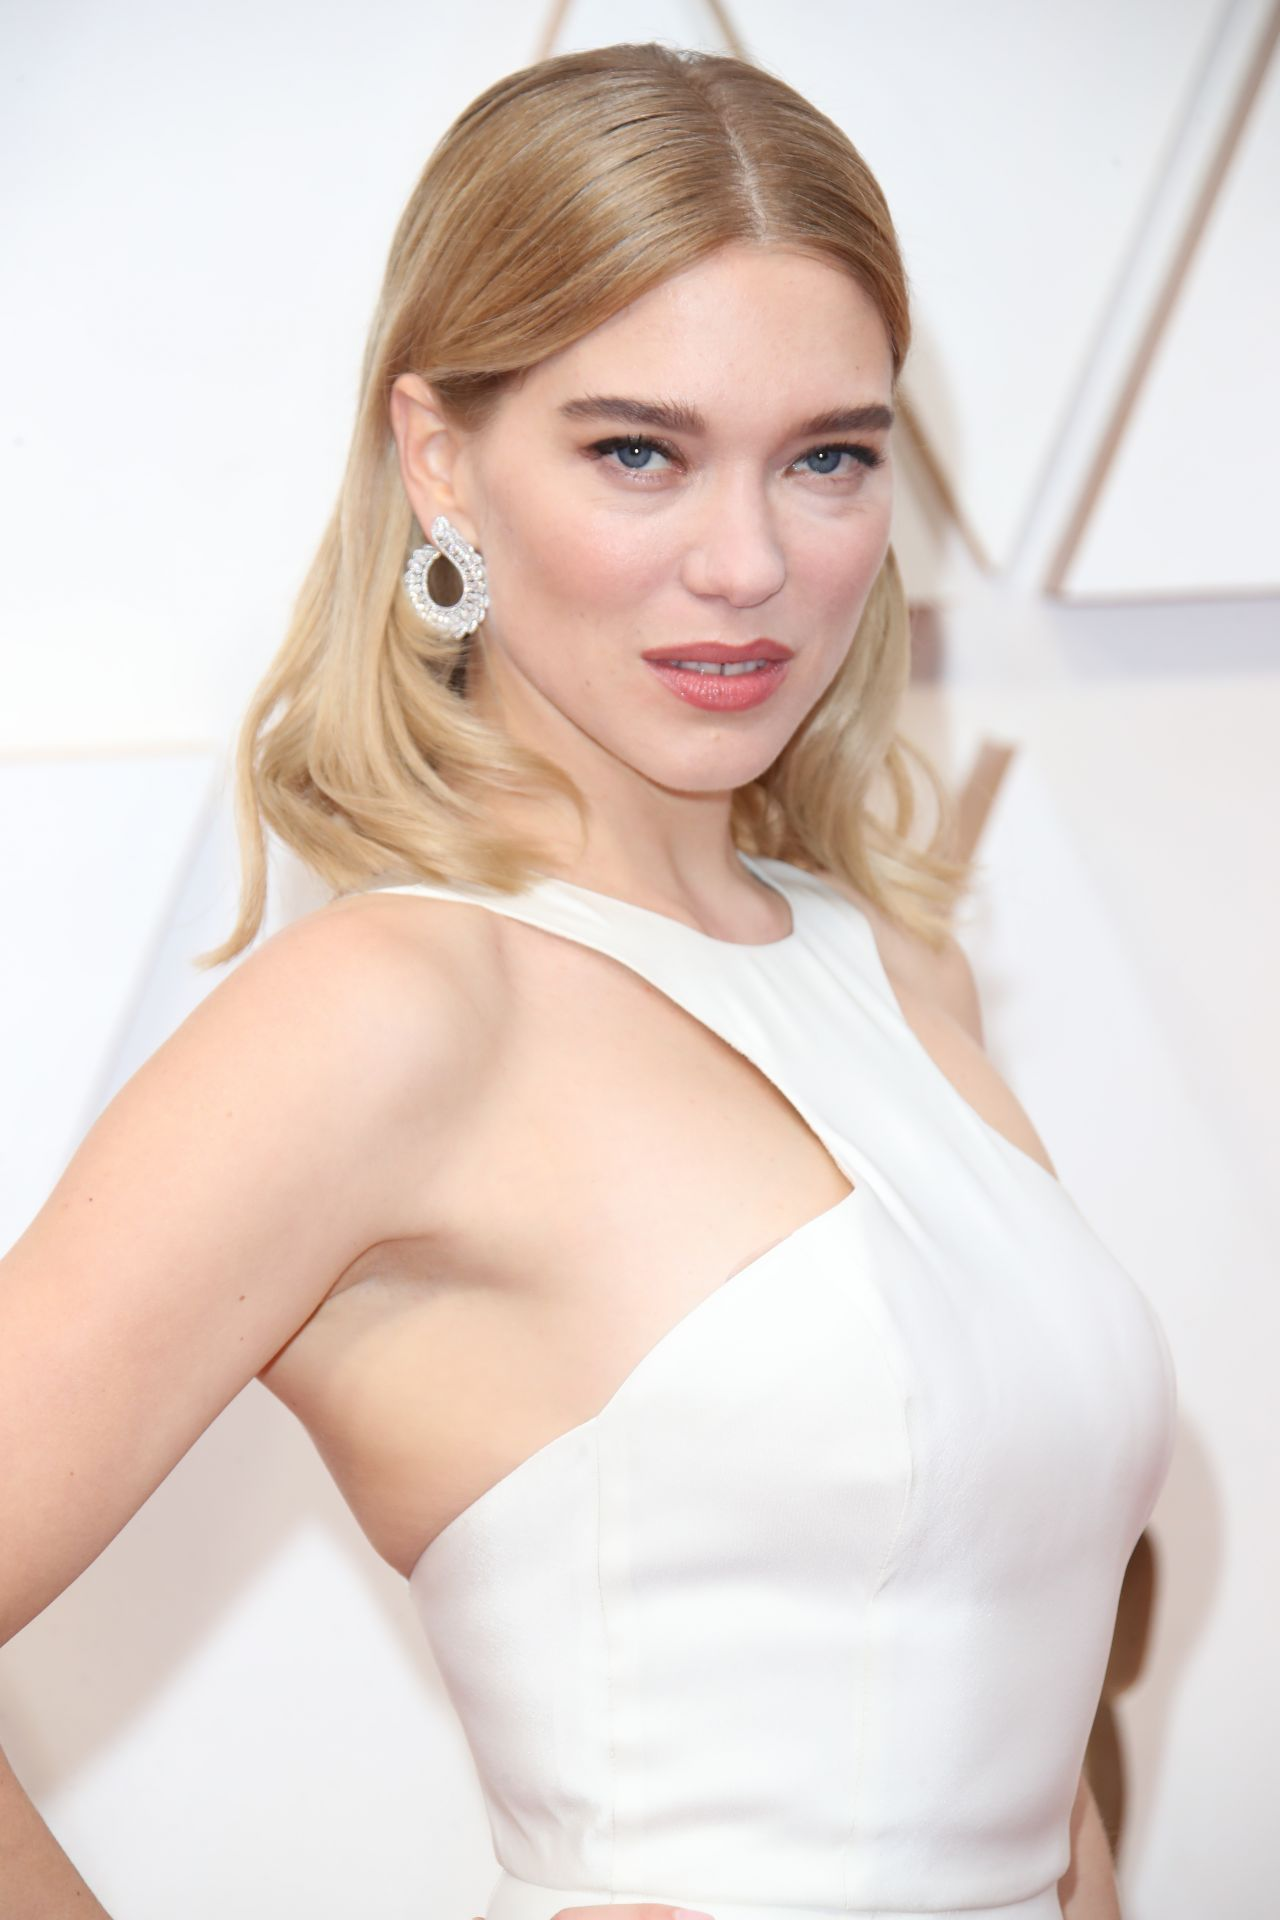 https://celebmafia.com/wp-content/uploads/2020/02/lea-seydoux-oscars-2020-red-carpet-4.jpg